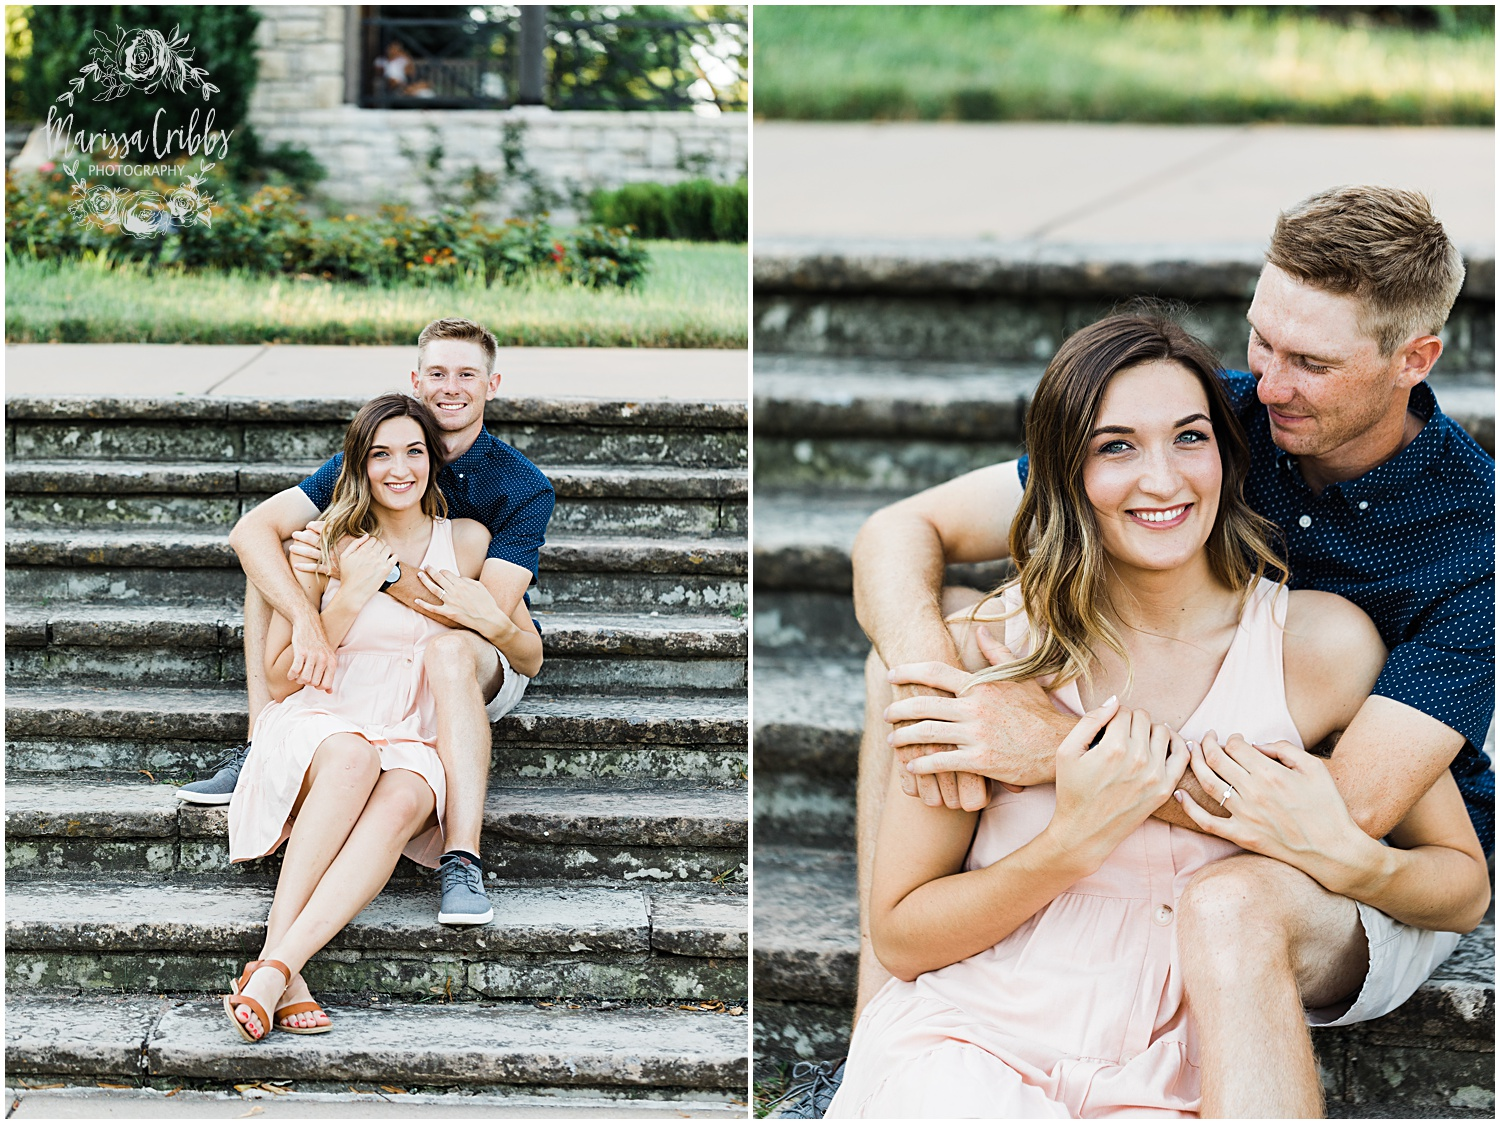 KELSEY & MICHAEL ENGAGEMENT BLOG | MARISSA CRIBBS PHOTOGRAPHY_8447.jpg